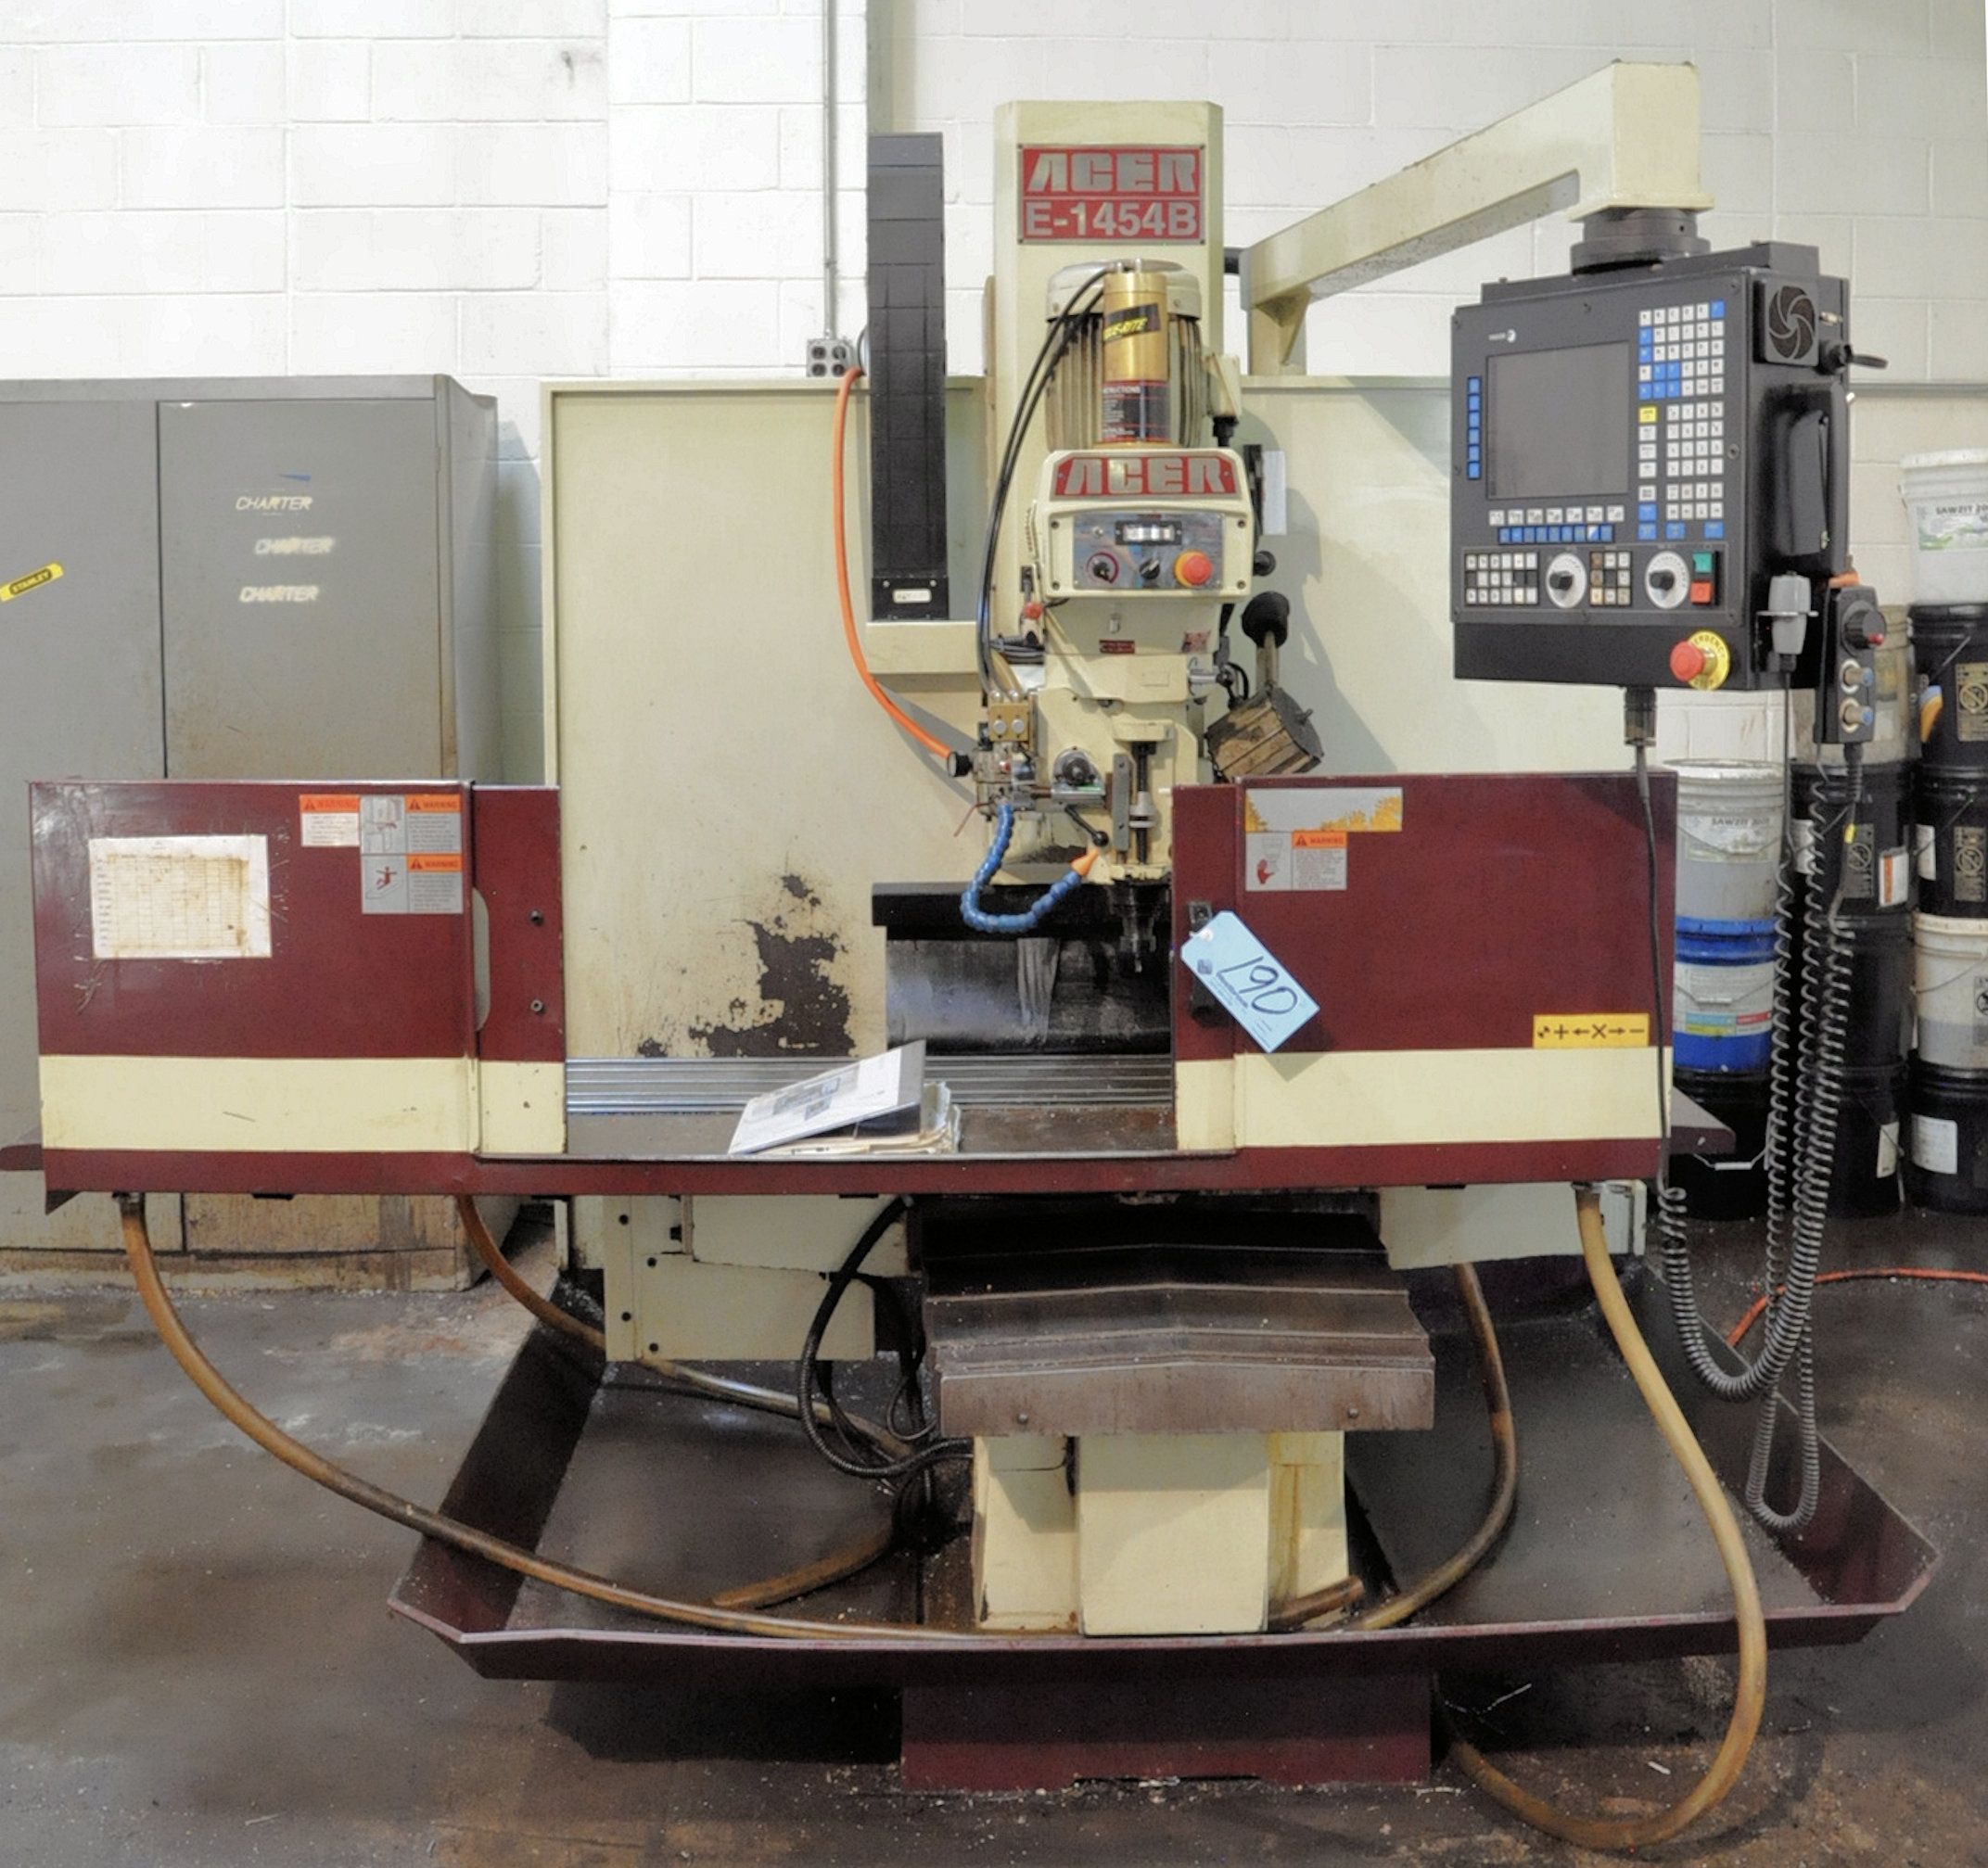 Acer Model E-1454B, 3-Axis CNC Bed Type Vertical Milling Machine, Fagor Control 5-HP (2009) - Image 2 of 7